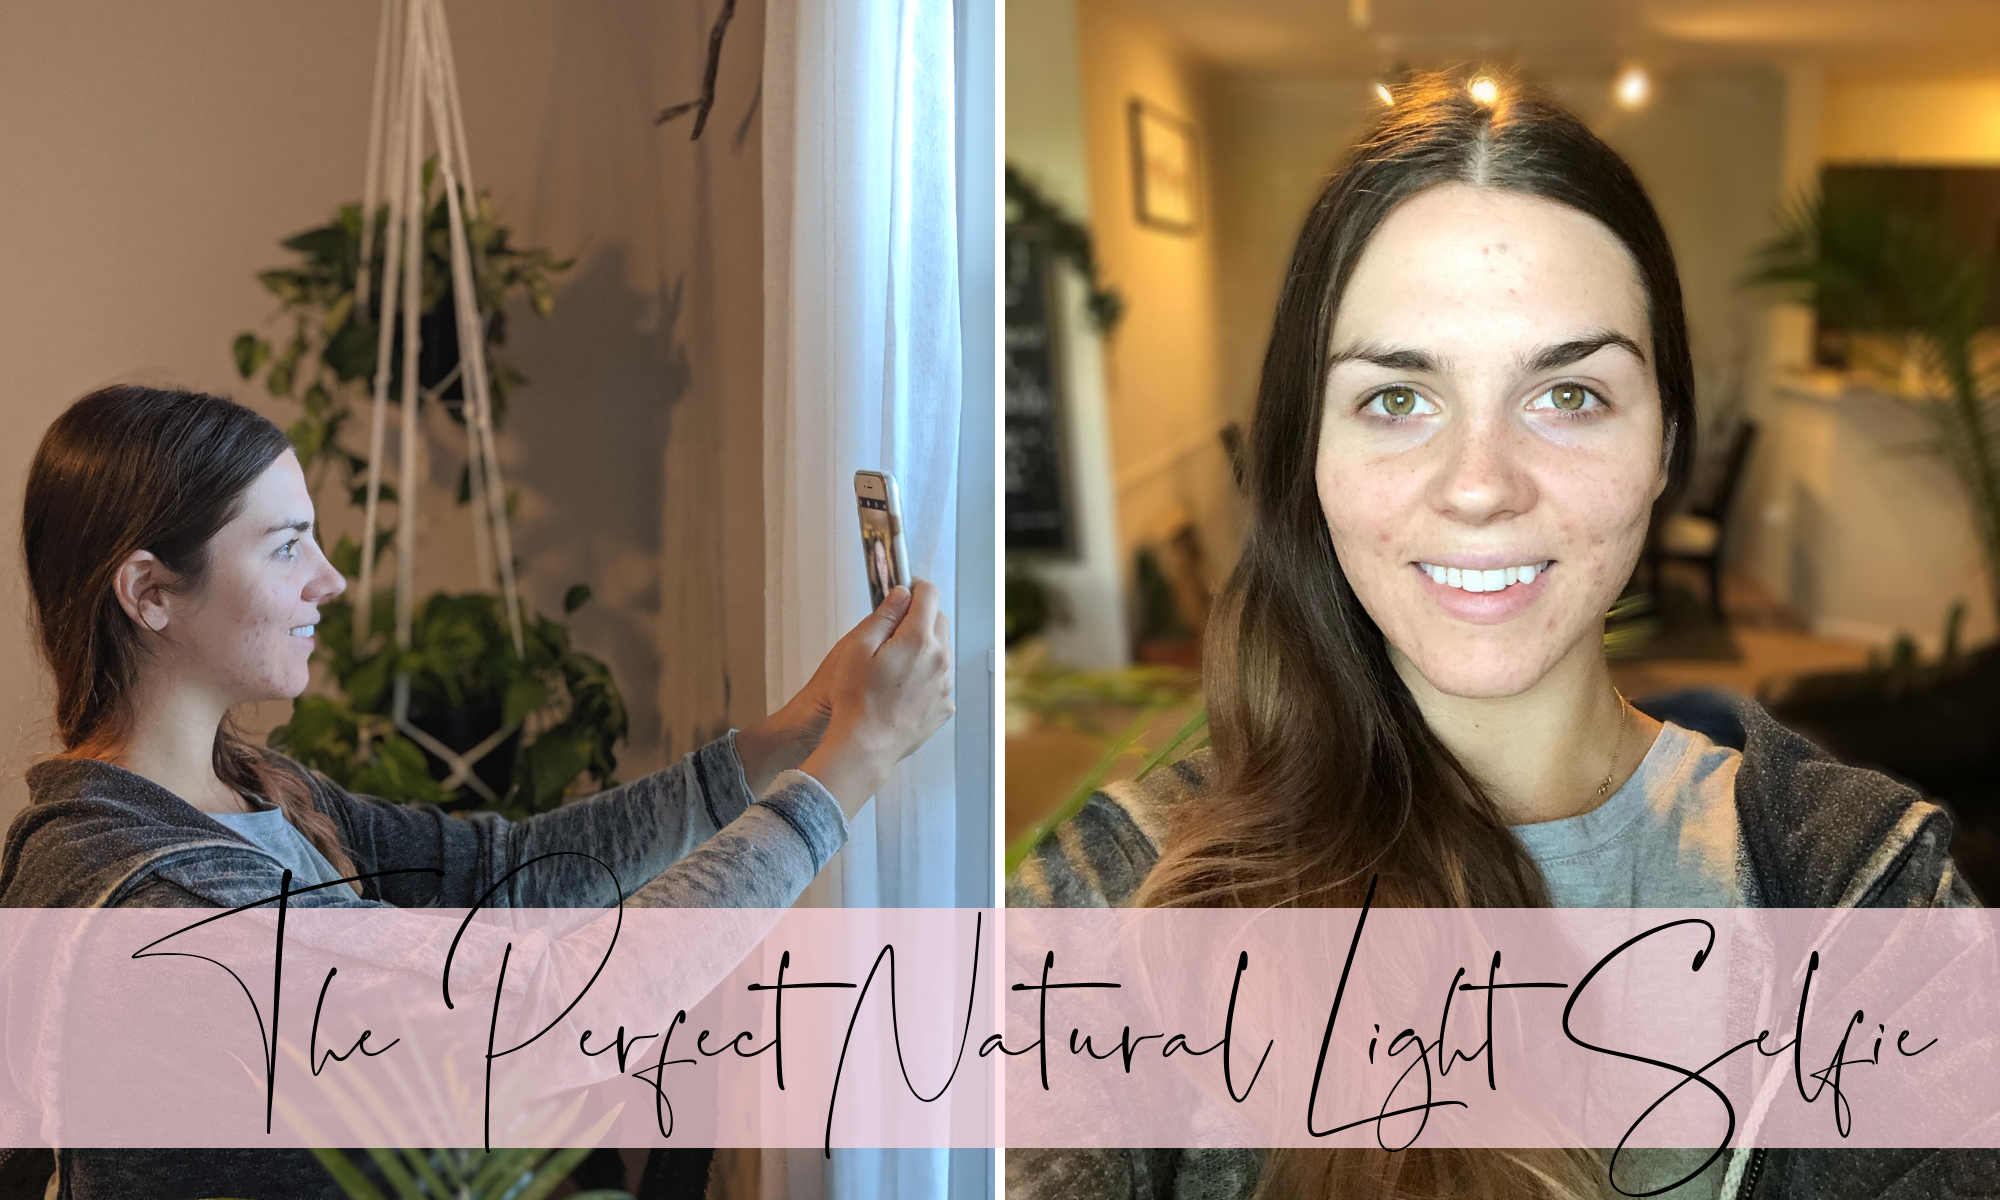 Send me your beautiful face! - Your routine is about to get simplified.